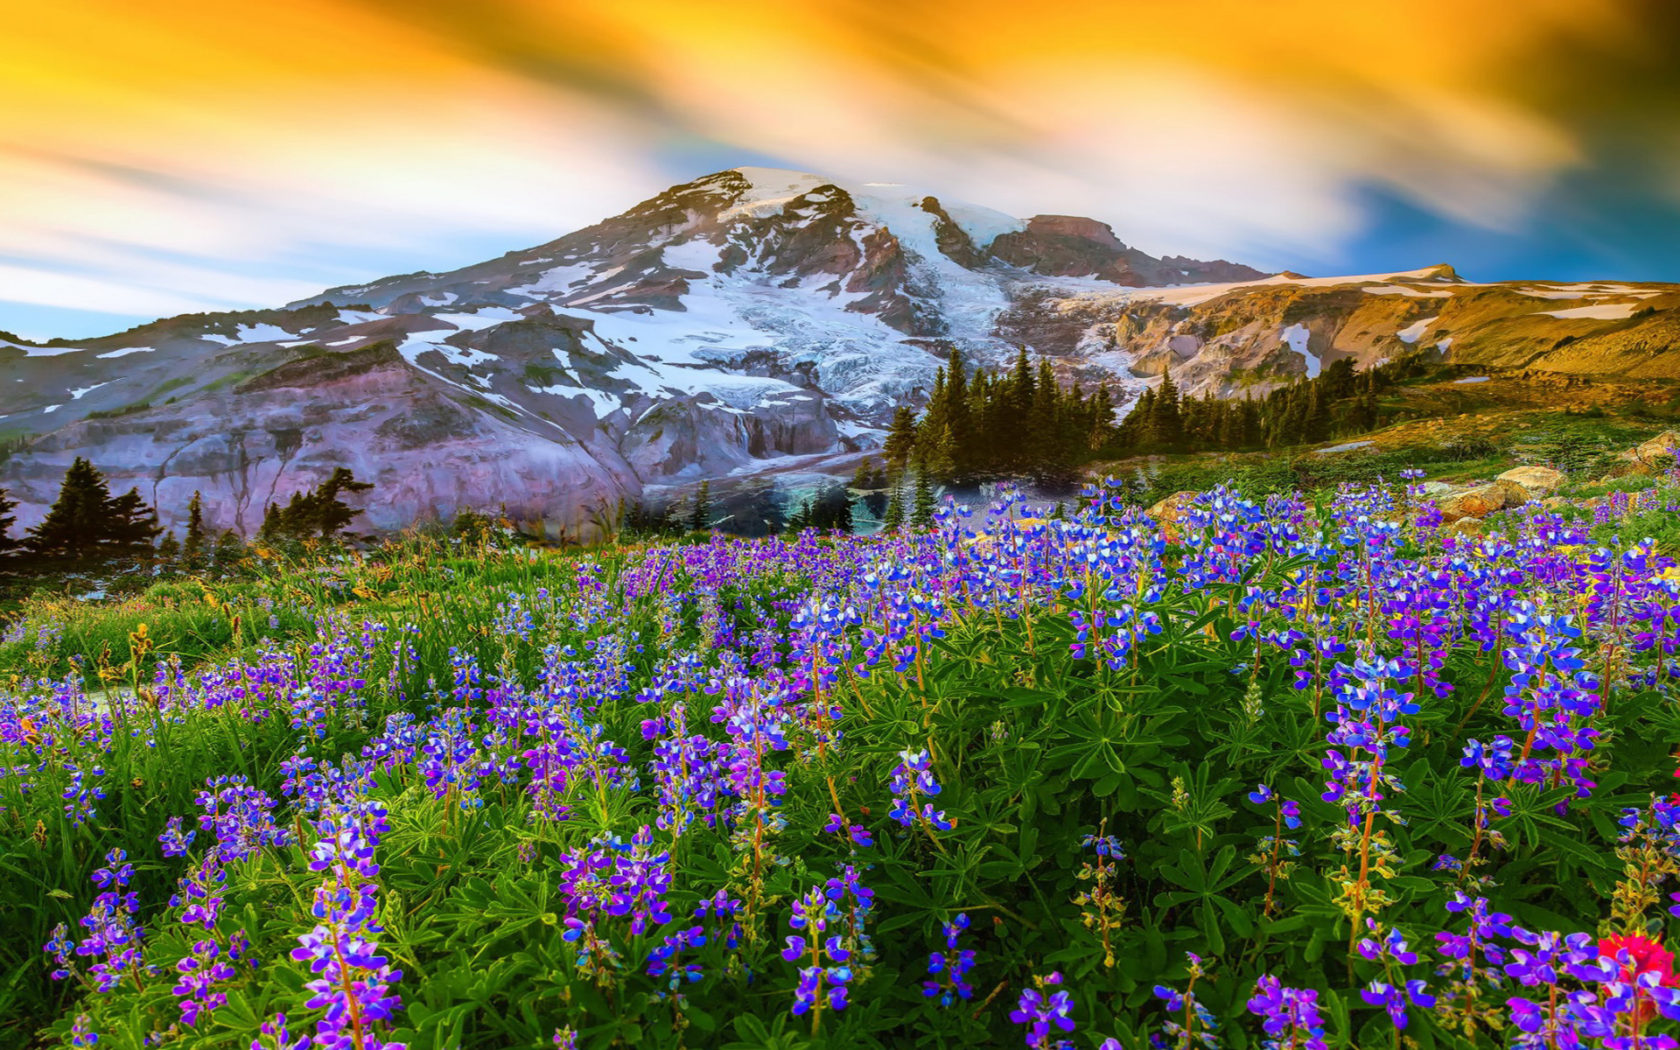 Free Desktop Wallpaper Fall Season Beautiful Spring Landscape Nature Flowers Mountain Snow